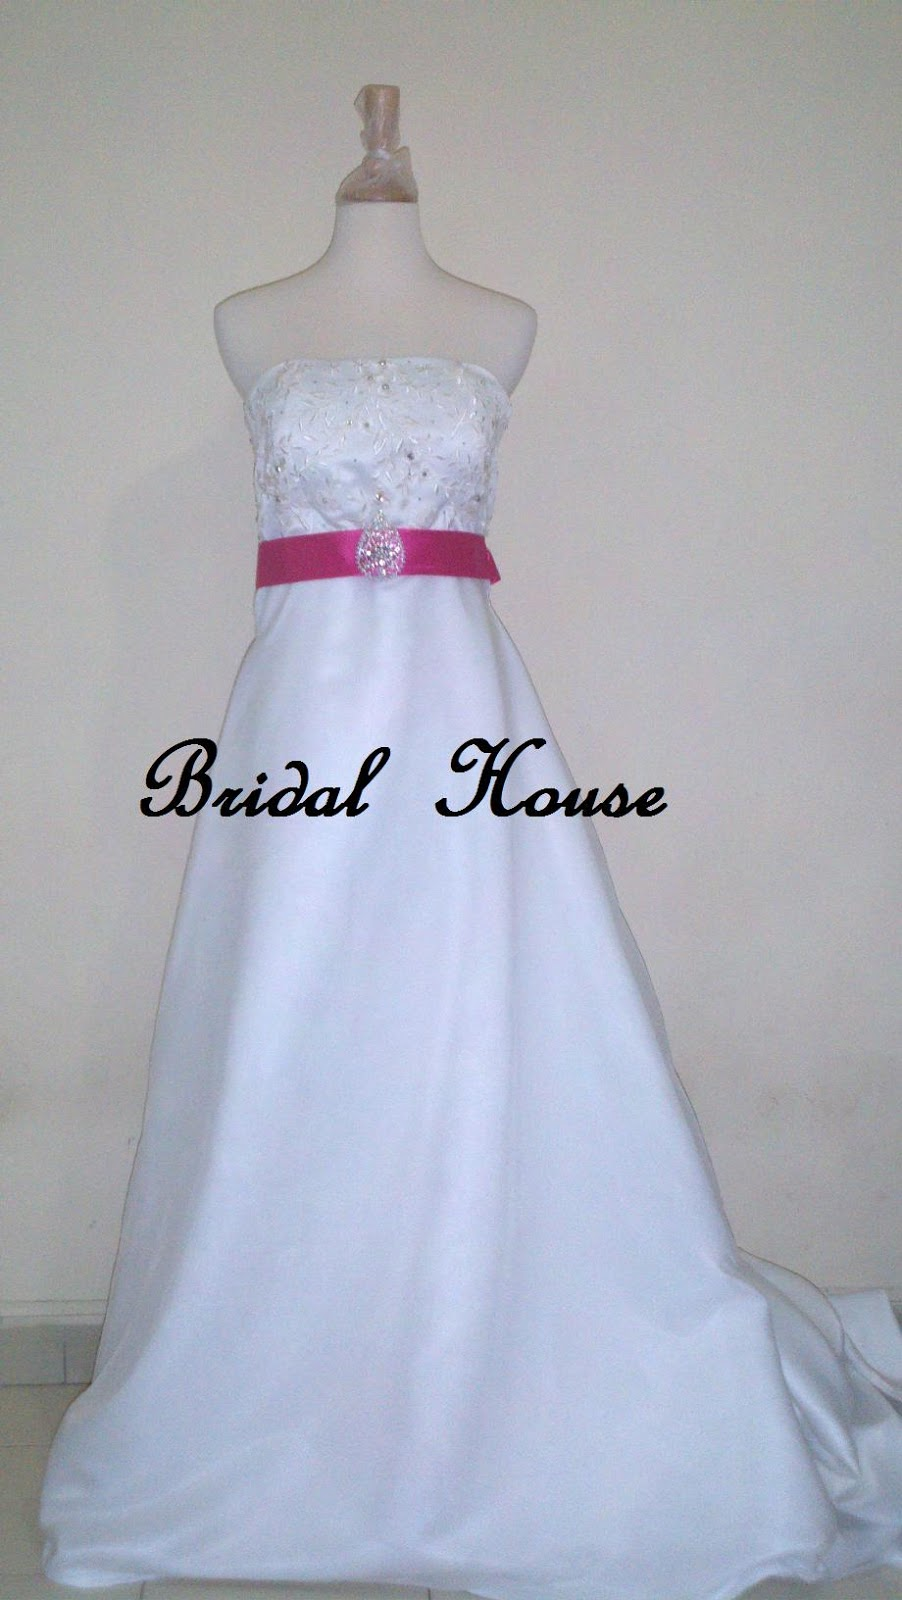 Bridal House - The Atelier